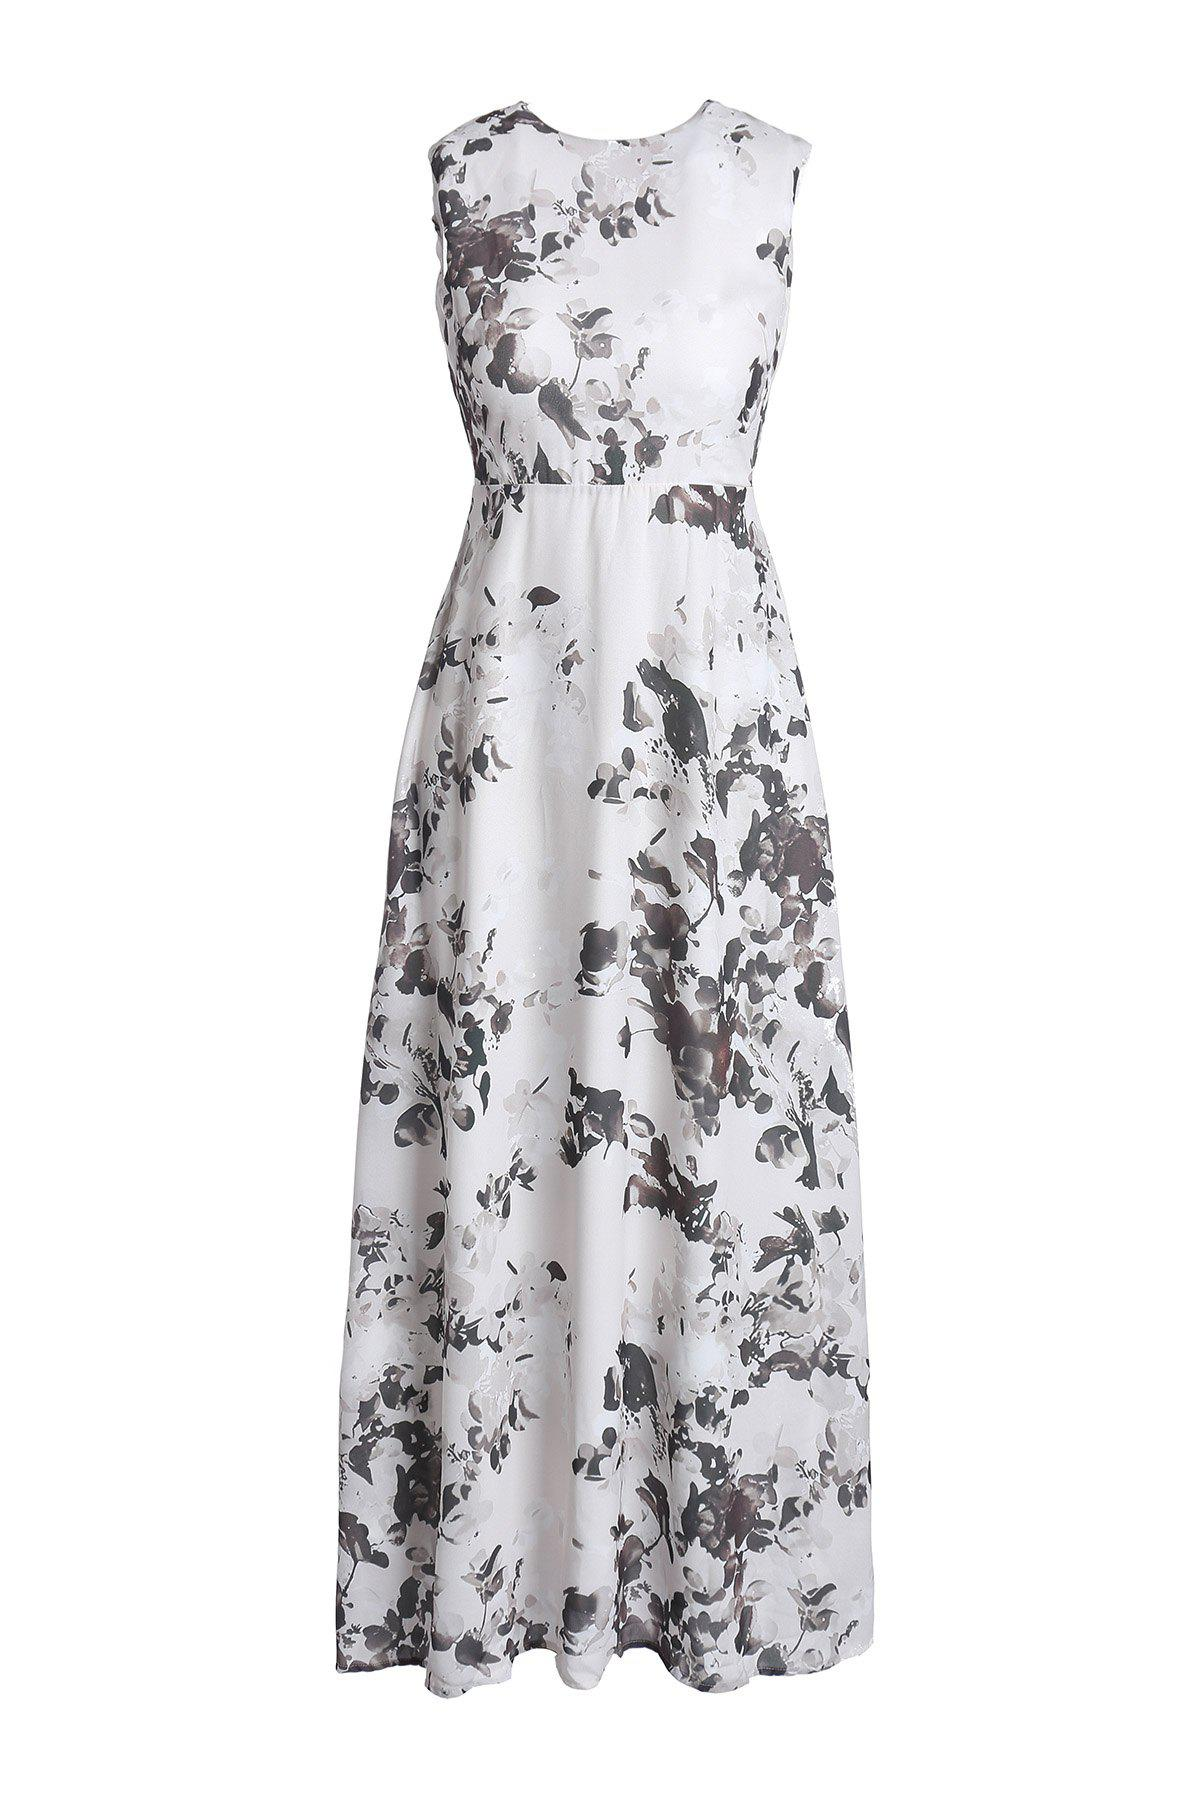 Alluring Women's Jewel Neck Sleeveless Printed Backless Maxi Dress - WHITE L